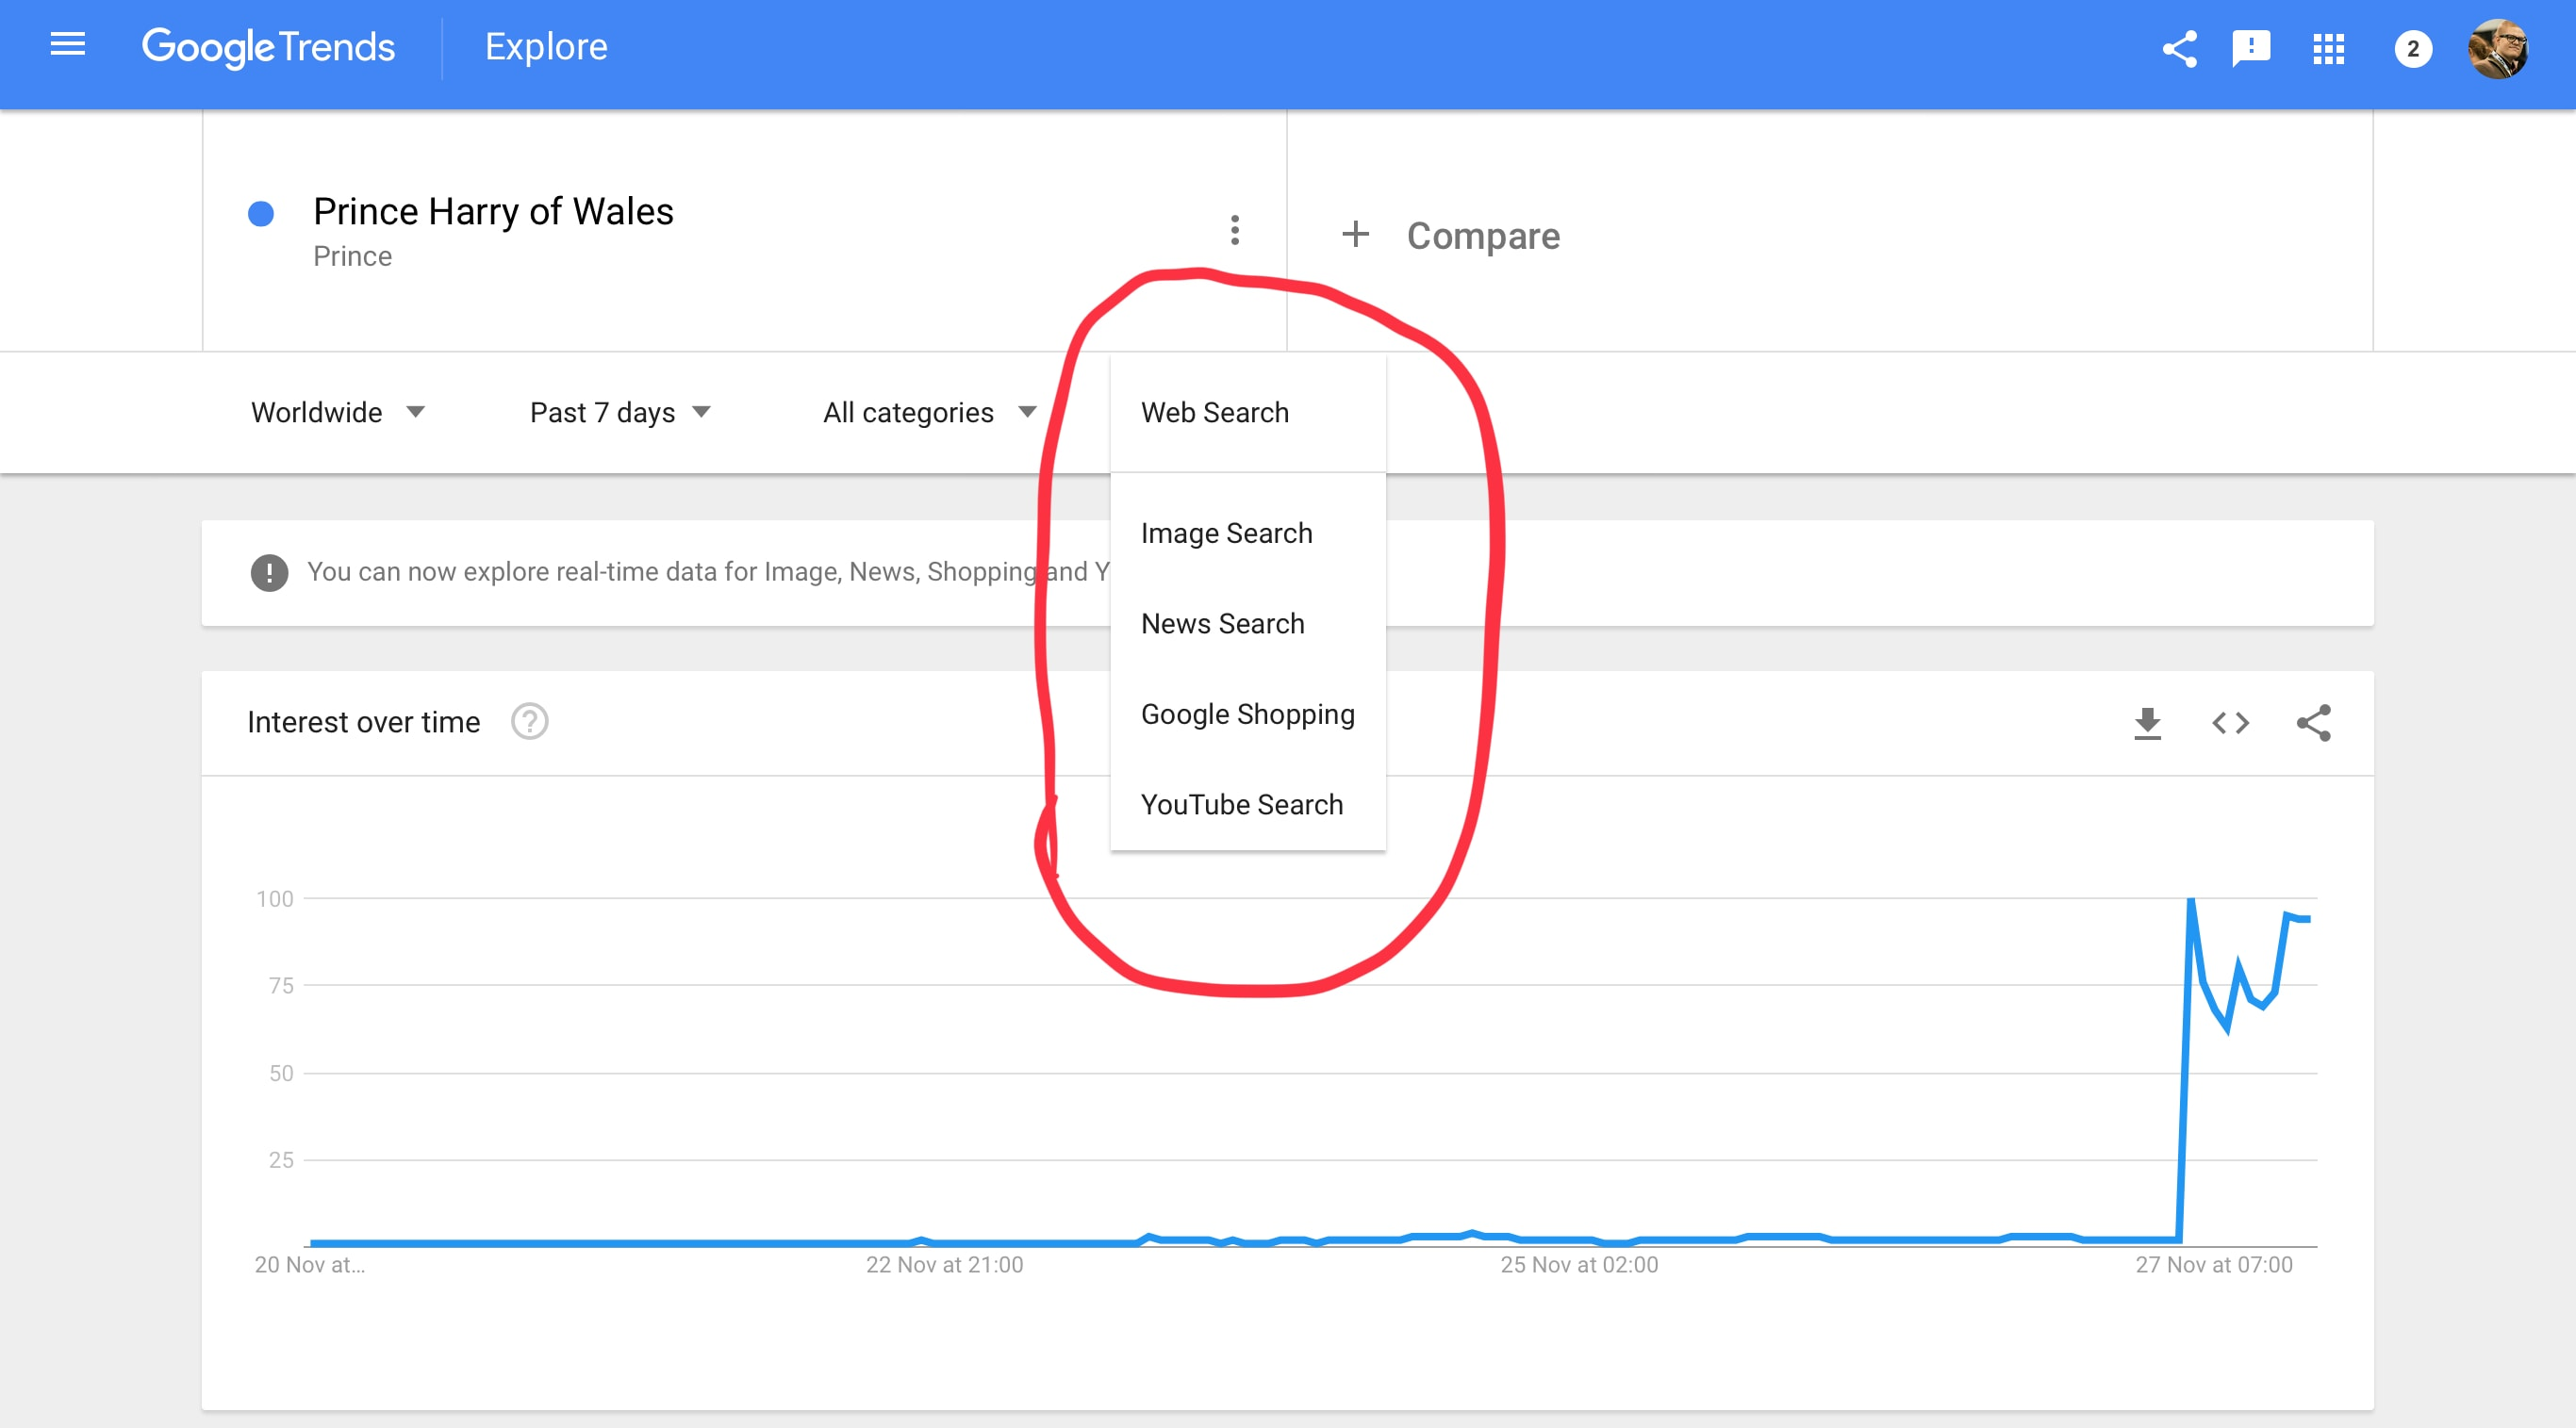 Google to Provide More Real-time Data in Google Trends